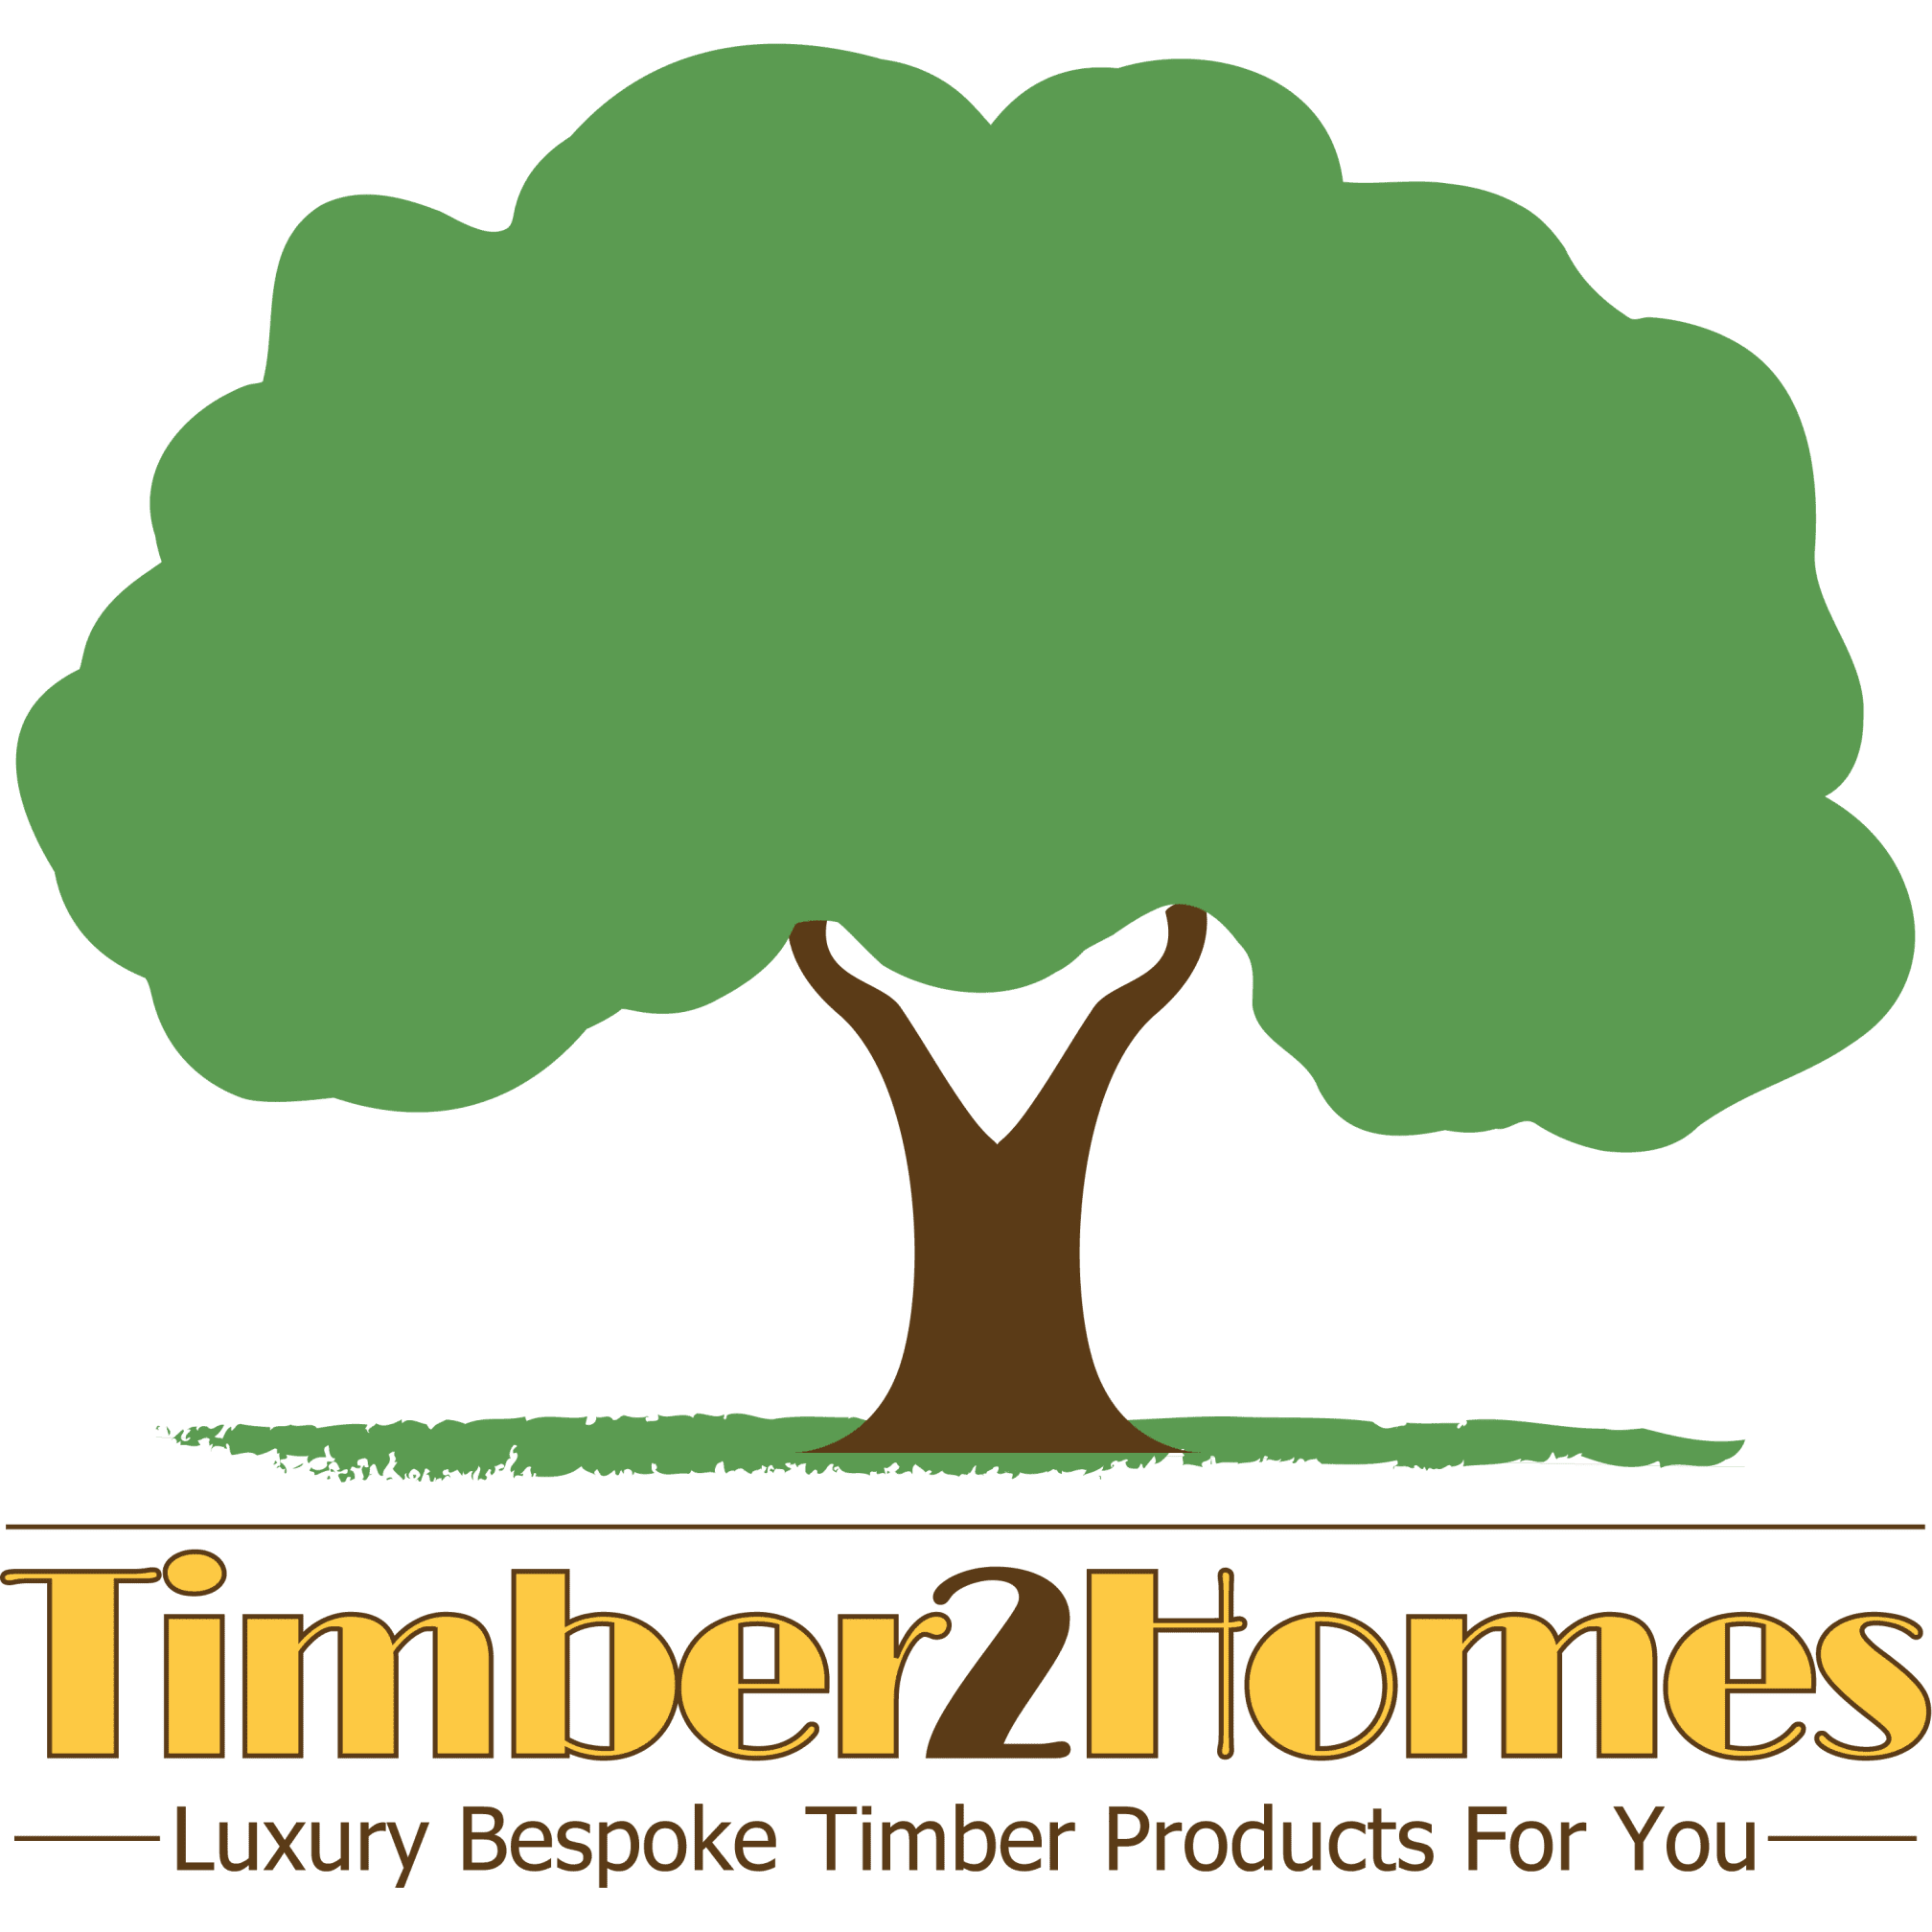 Timber2Homes Ltd - Scunthorpe, Lincolnshire DN15 8SN - 01724 851220 | ShowMeLocal.com